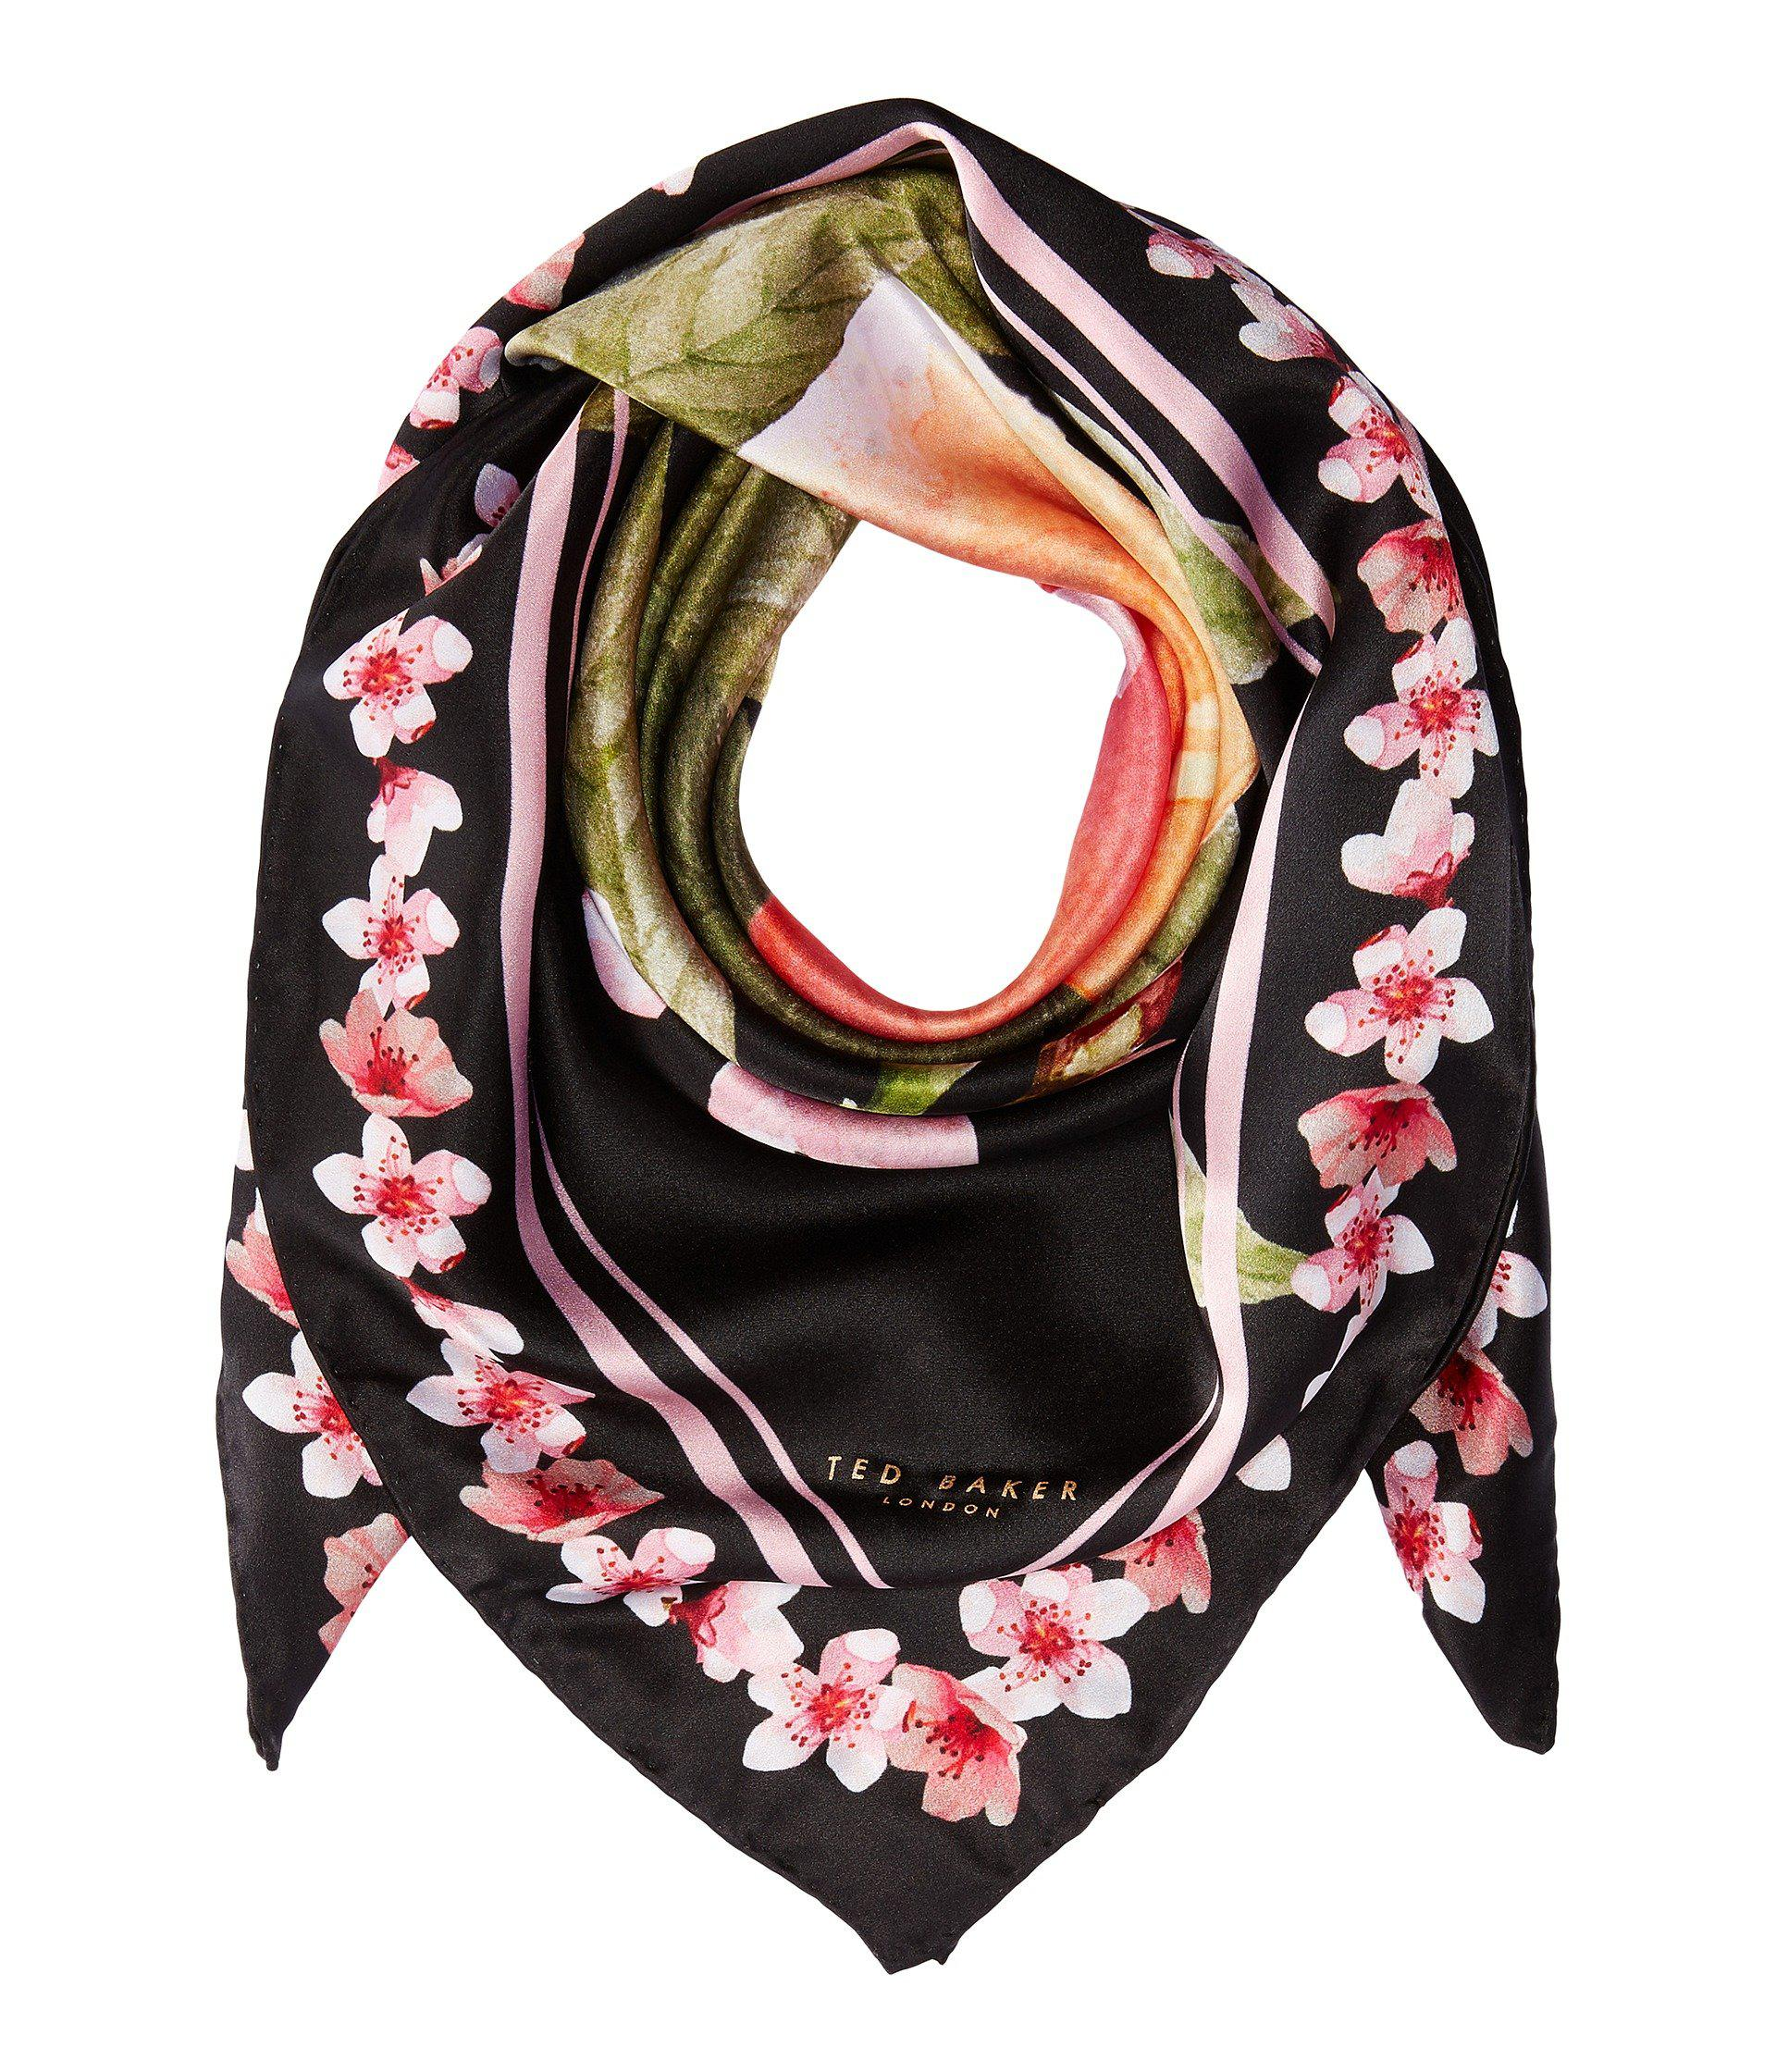 026b8ef2110580 Lyst - Ted Baker Peach Blossom Square Scarf in Black